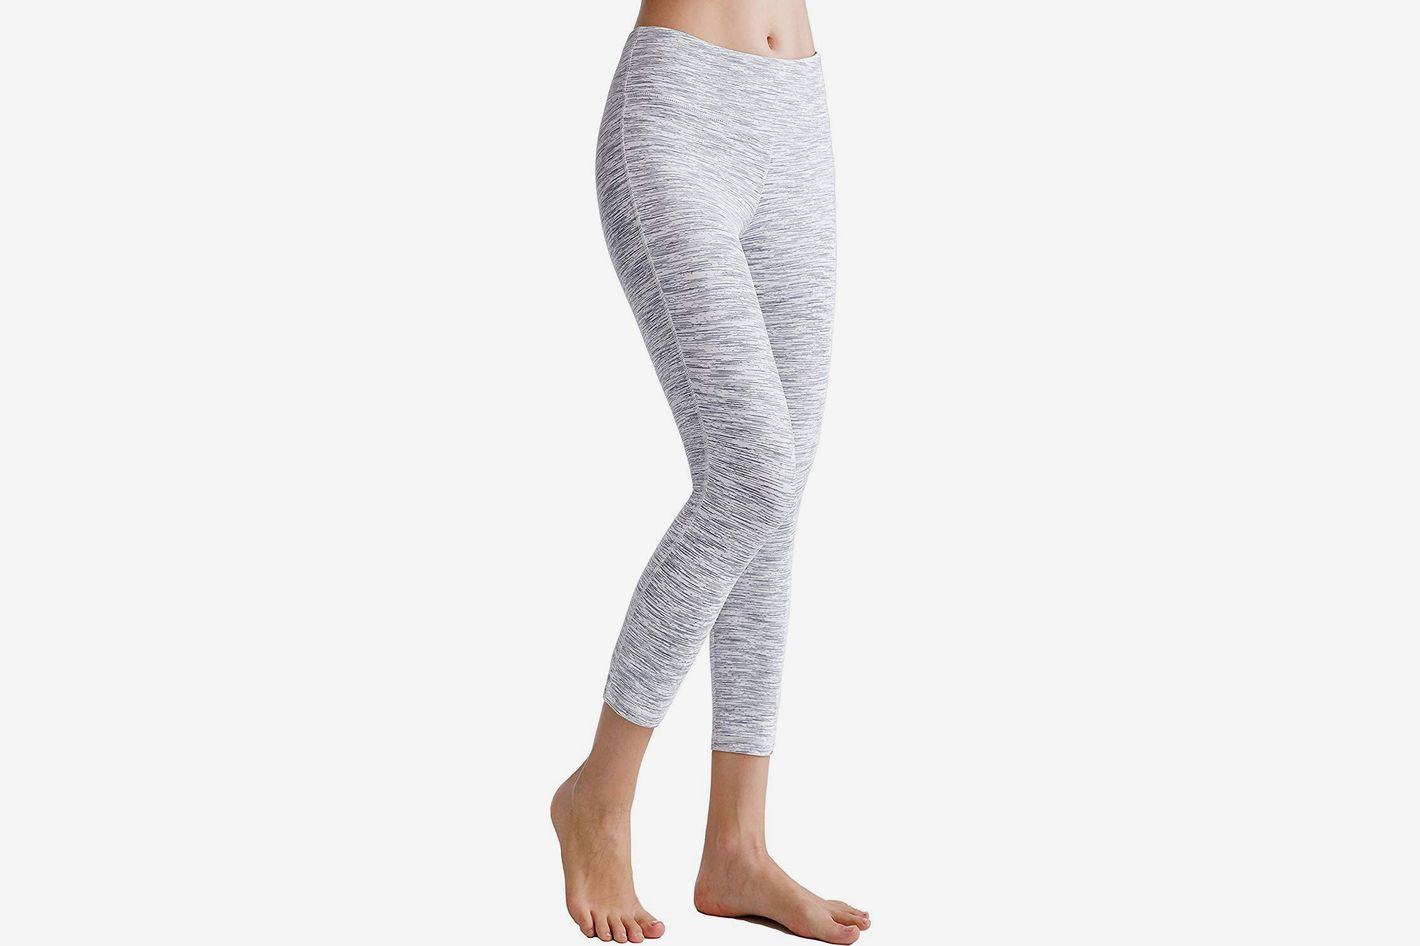 b228b6de0a96f1 The 20 Best Yoga Pants for Women 2019